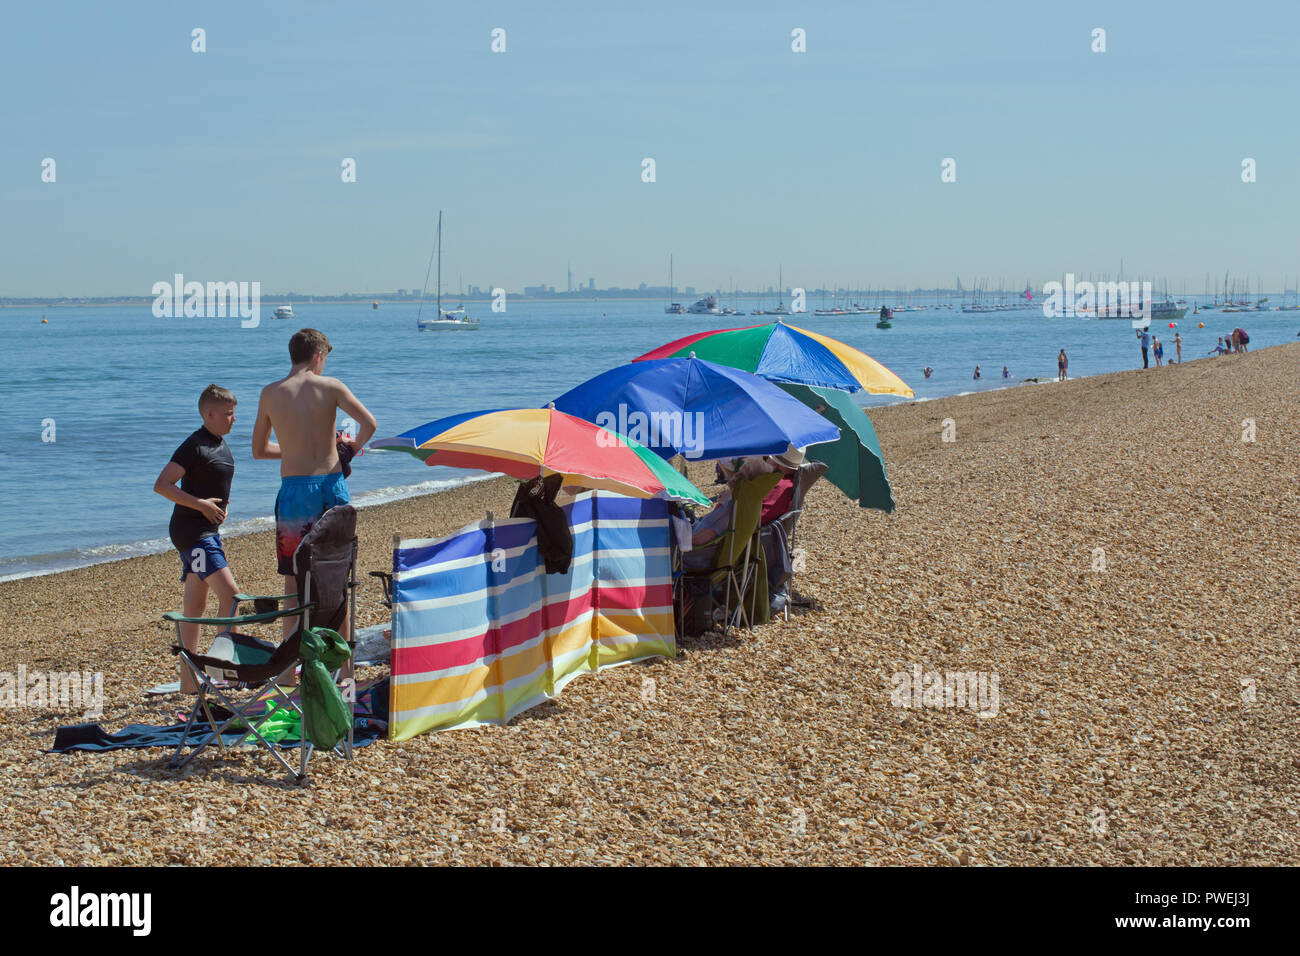 Solent eye stock photos solent eye stock images alamy - Medina swimming pool isle of wight ...